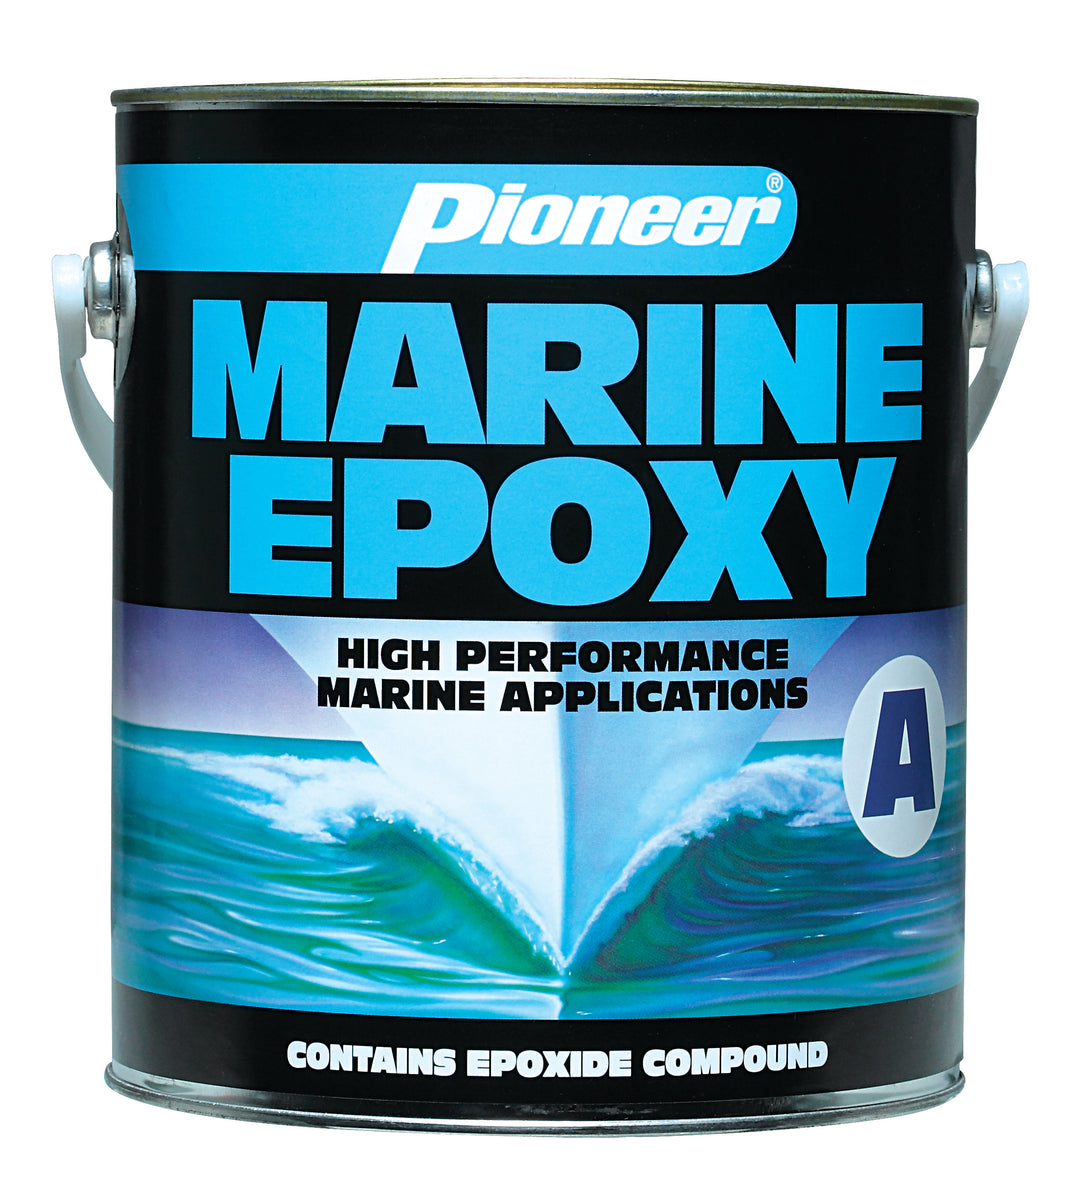 Marine Epoxy Concrete Protection